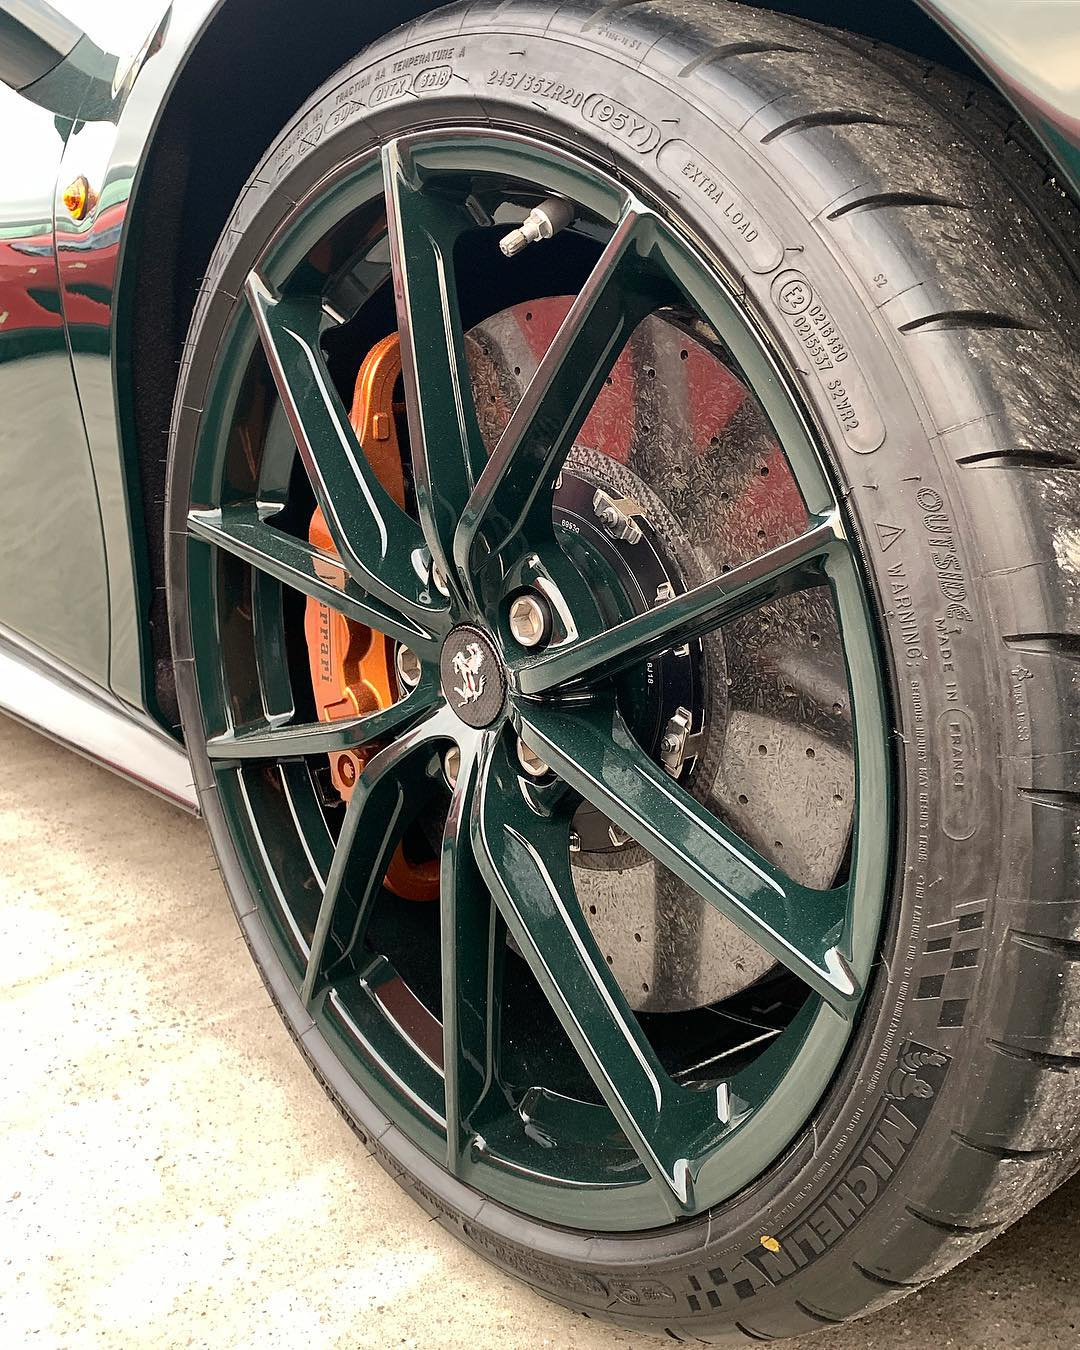 Zero2turbo Com On Twitter Ferrari 488 Pista Finished In British Racing Green With British Racing Green Wheels Too Hit Or Miss Photo S Via Horsepower Hunters Instagram Https T Co Pk4a68hyue